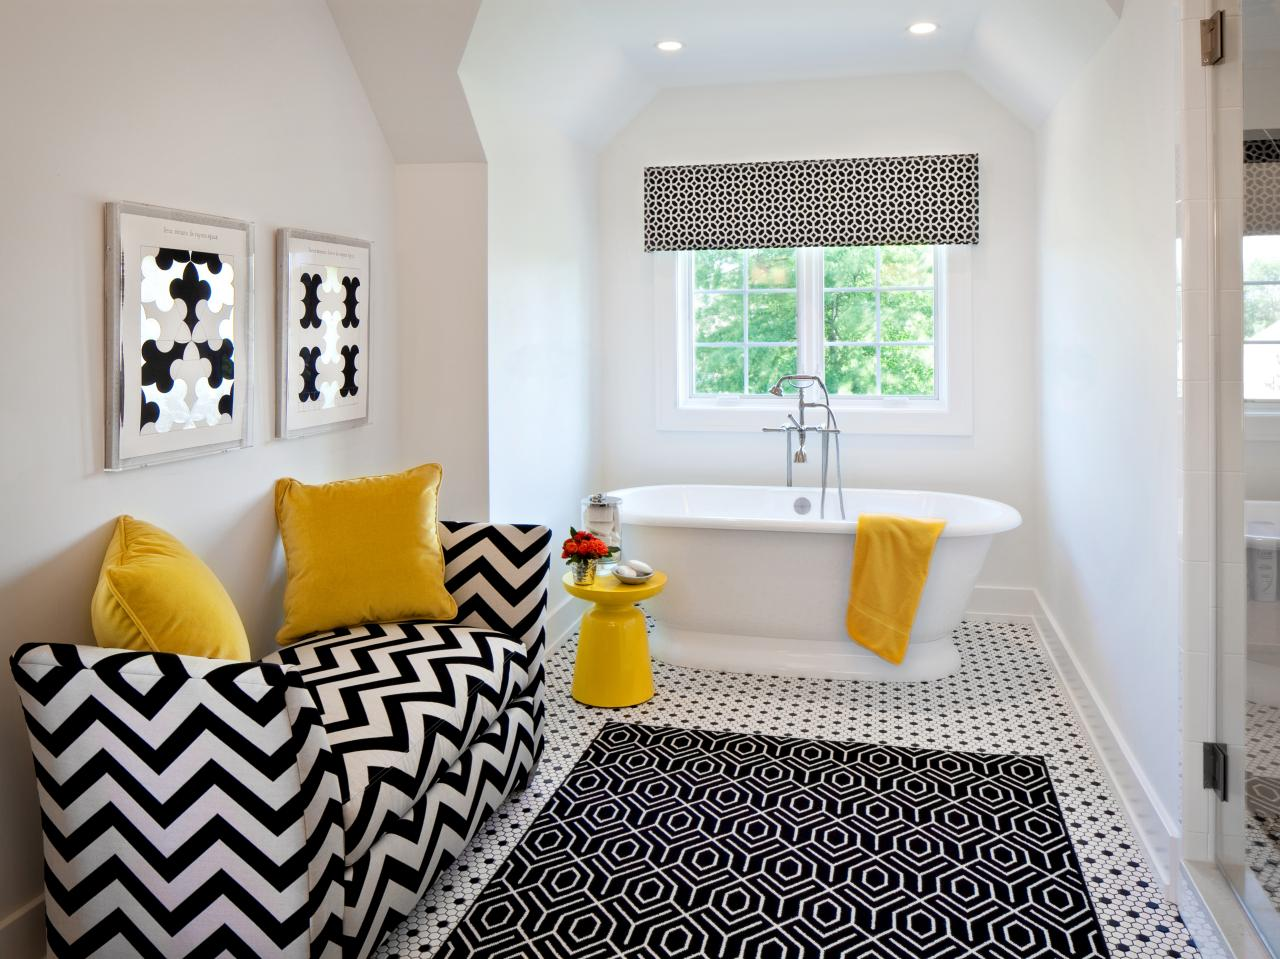 Black and white bathroom decor ideas hgtv pictures hgtv for Bathroom themes